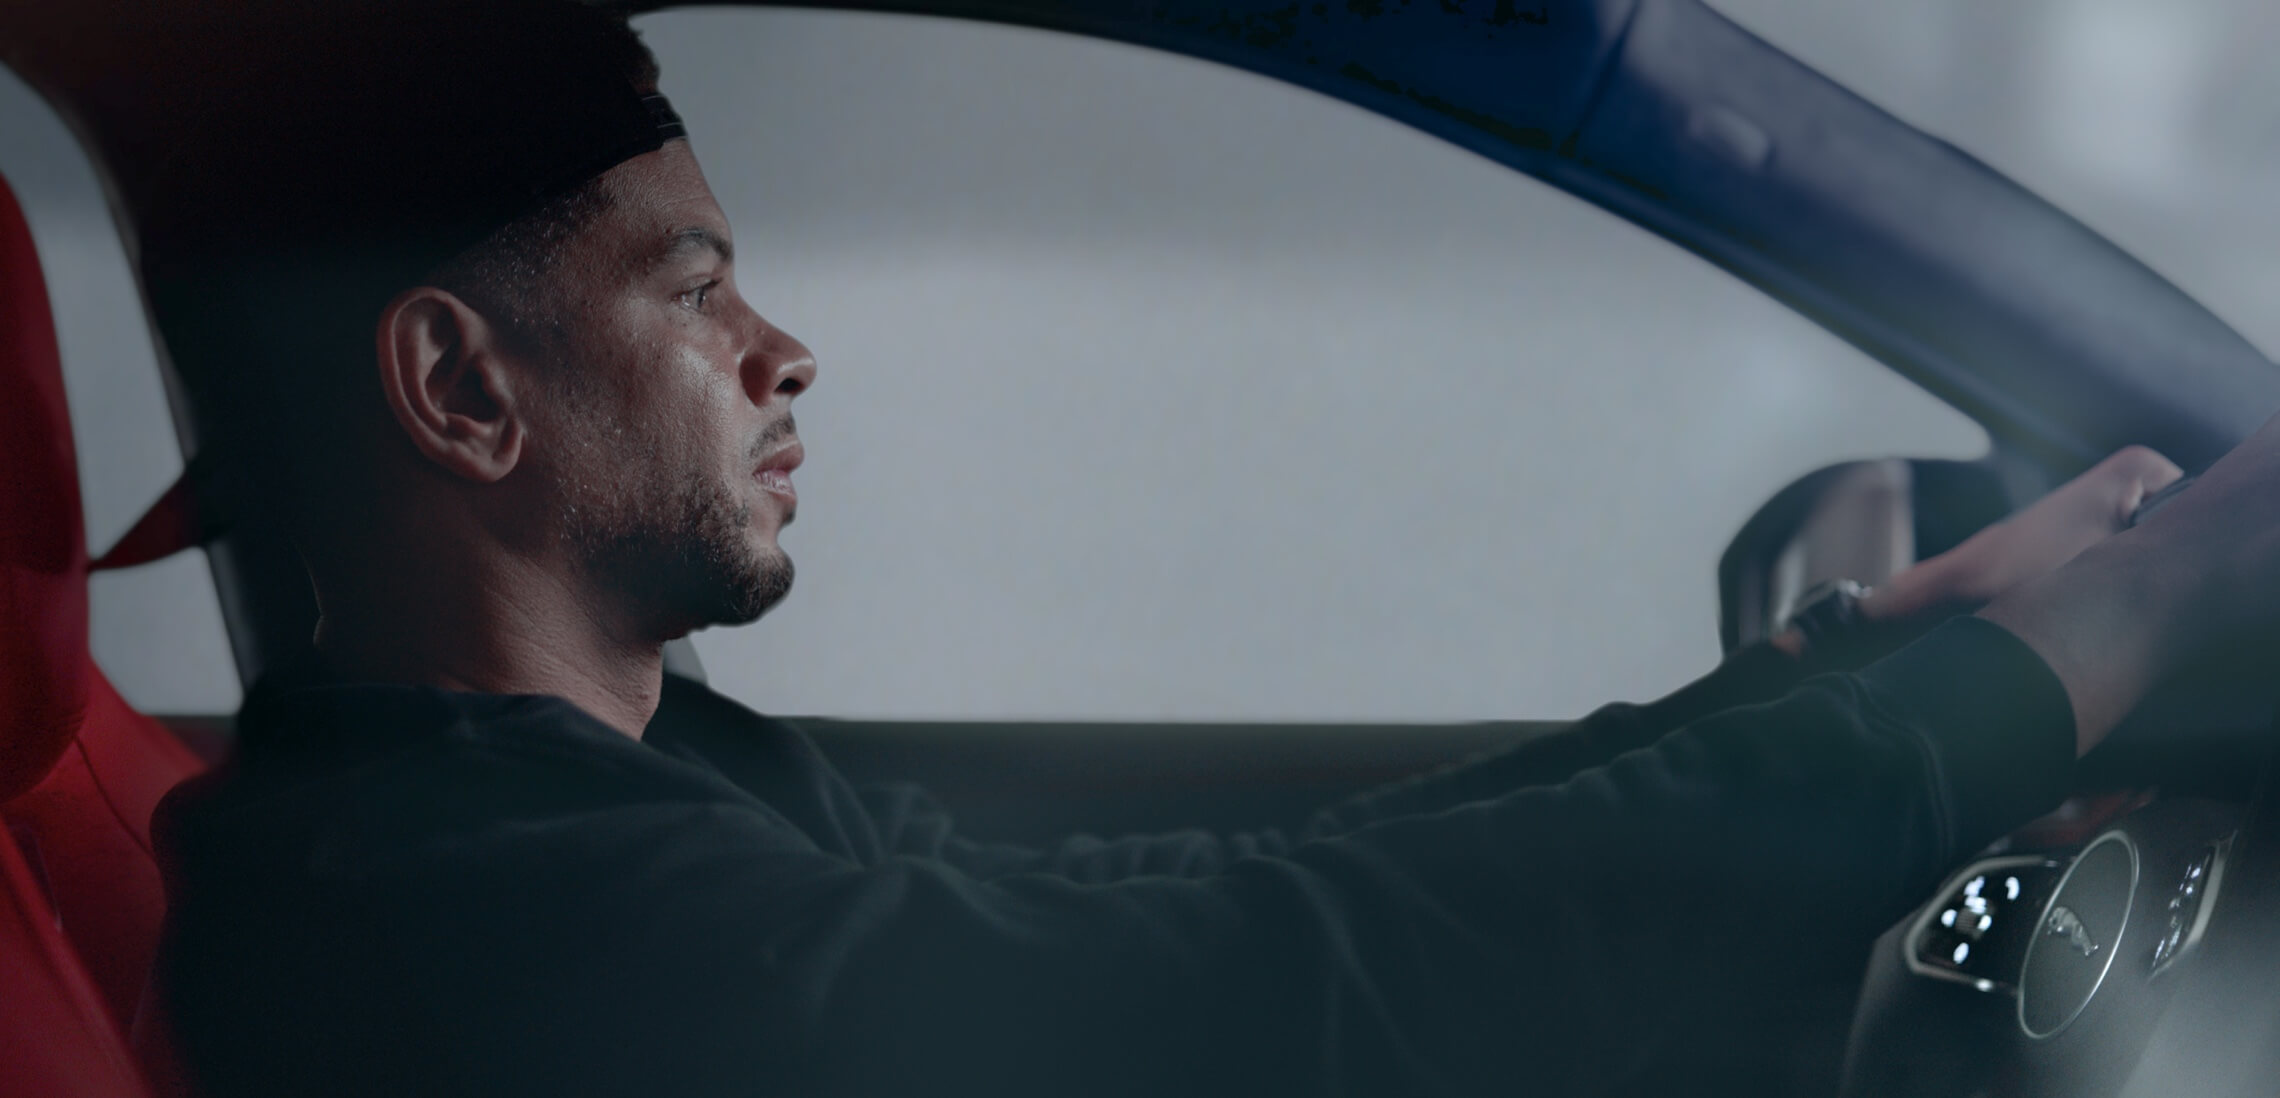 MK appears in new global campaign amidst dynamic partnership with Jaguar